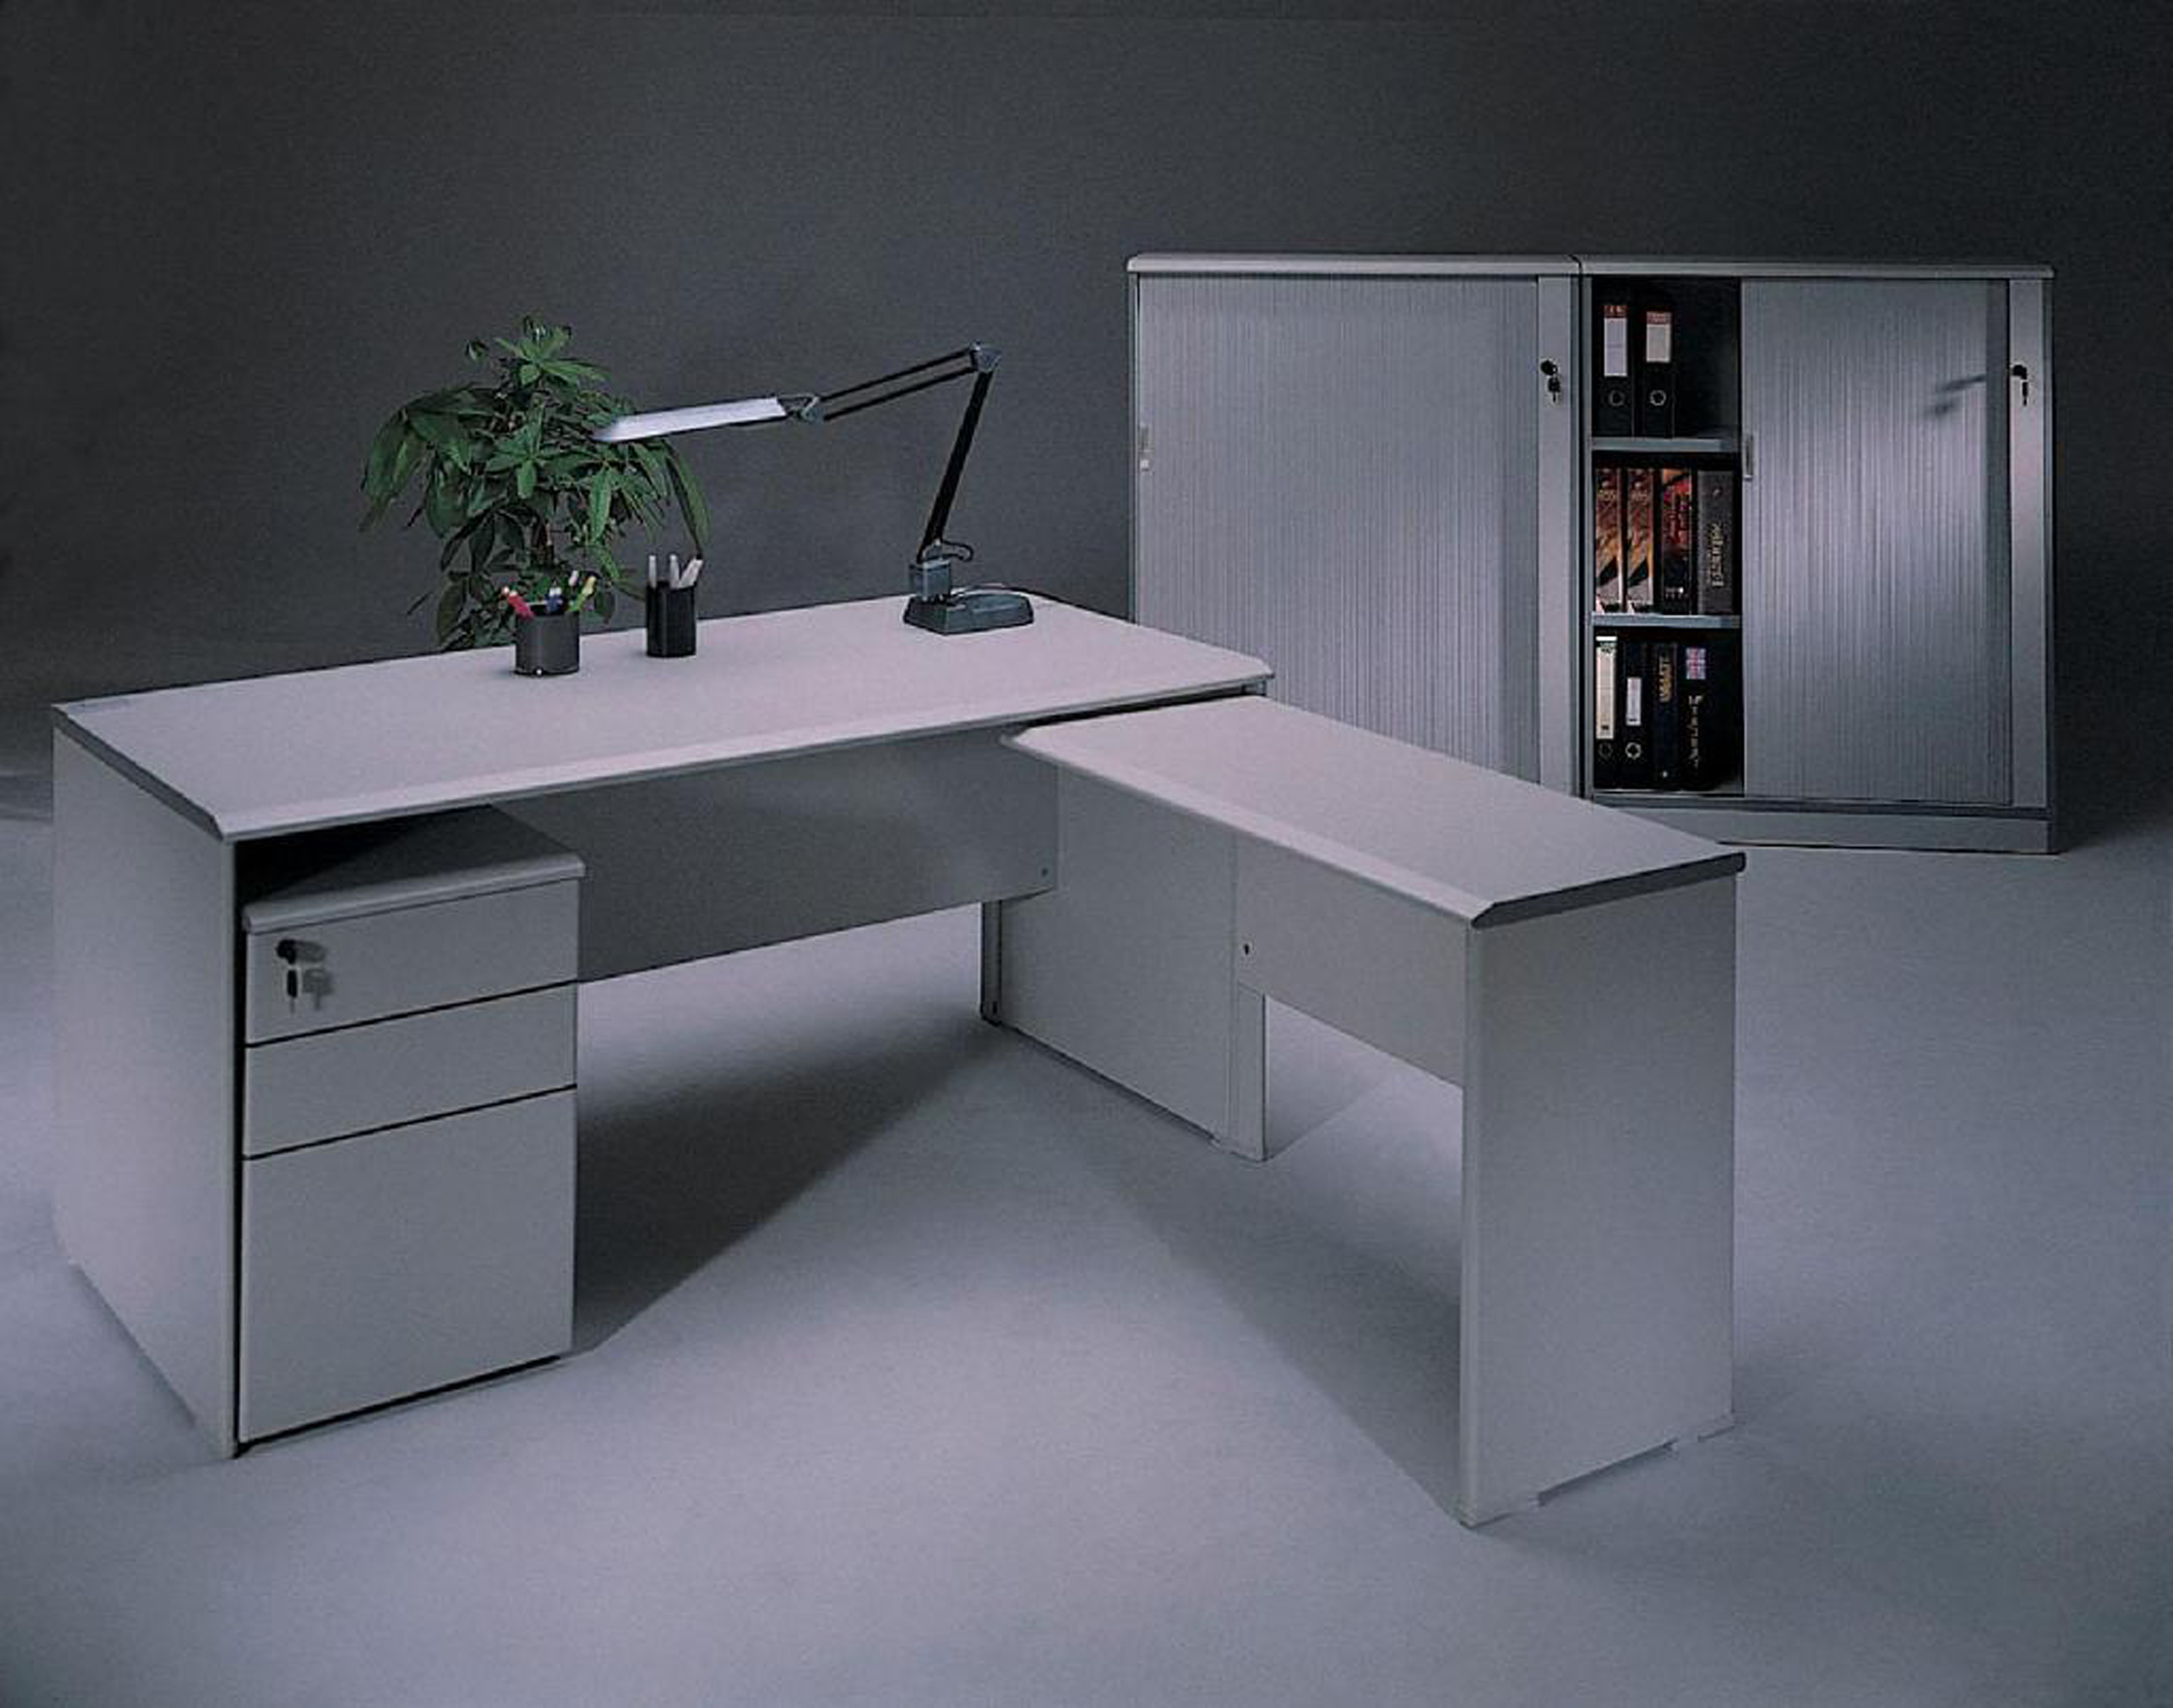 Admirable Modern Home Office Desk Design Idea In White With Black Silver Desk Lamp Green Plant And White Cabinet With Open Shelves Fabulous Modern Home Office Desk Design Ideas (View 19 of 30)